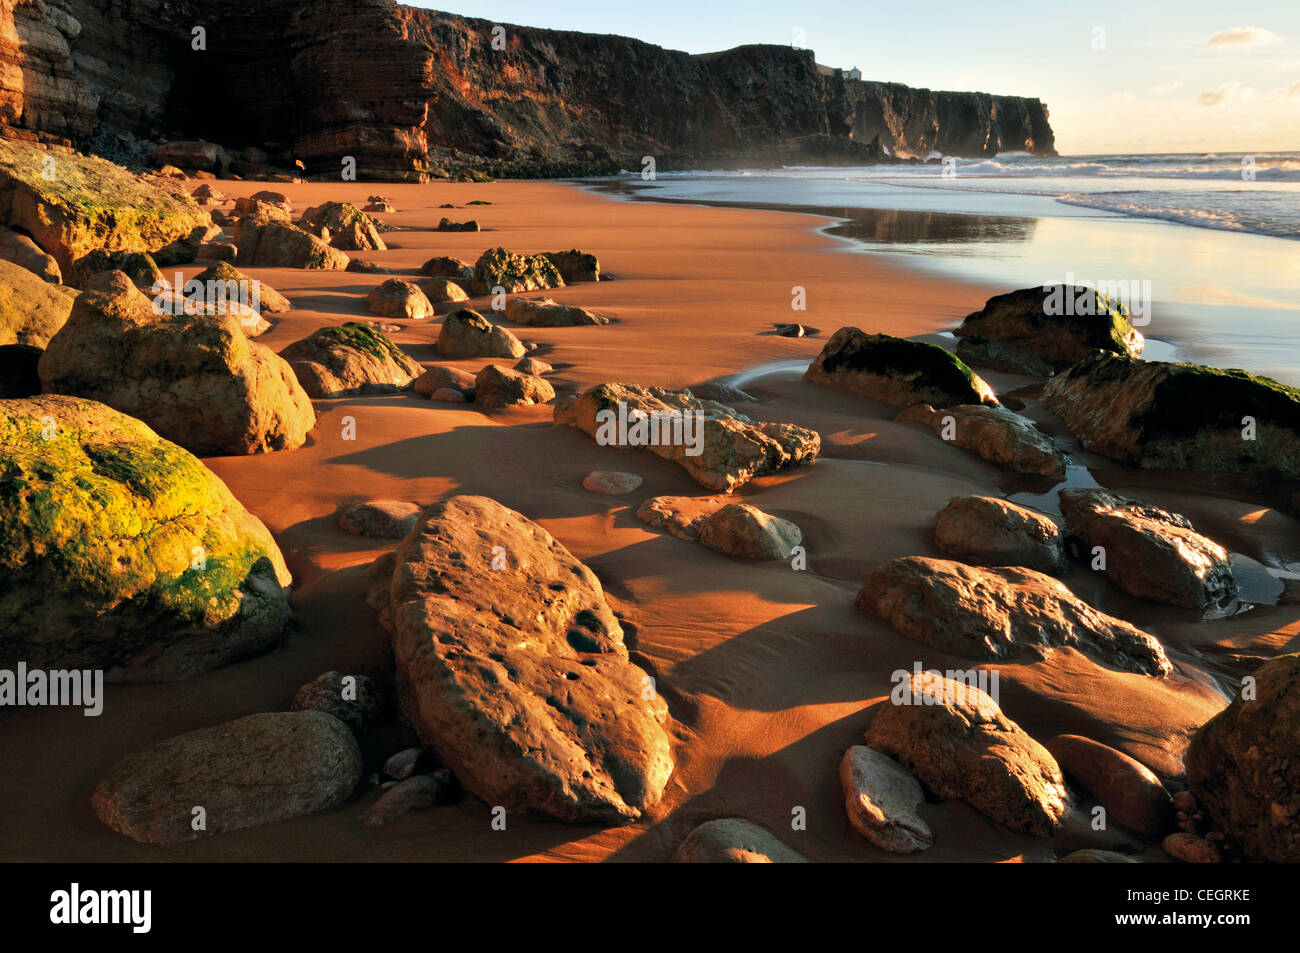 Portugal, Algarve: Beach Praia do Tonel in Sagres - Stock Image